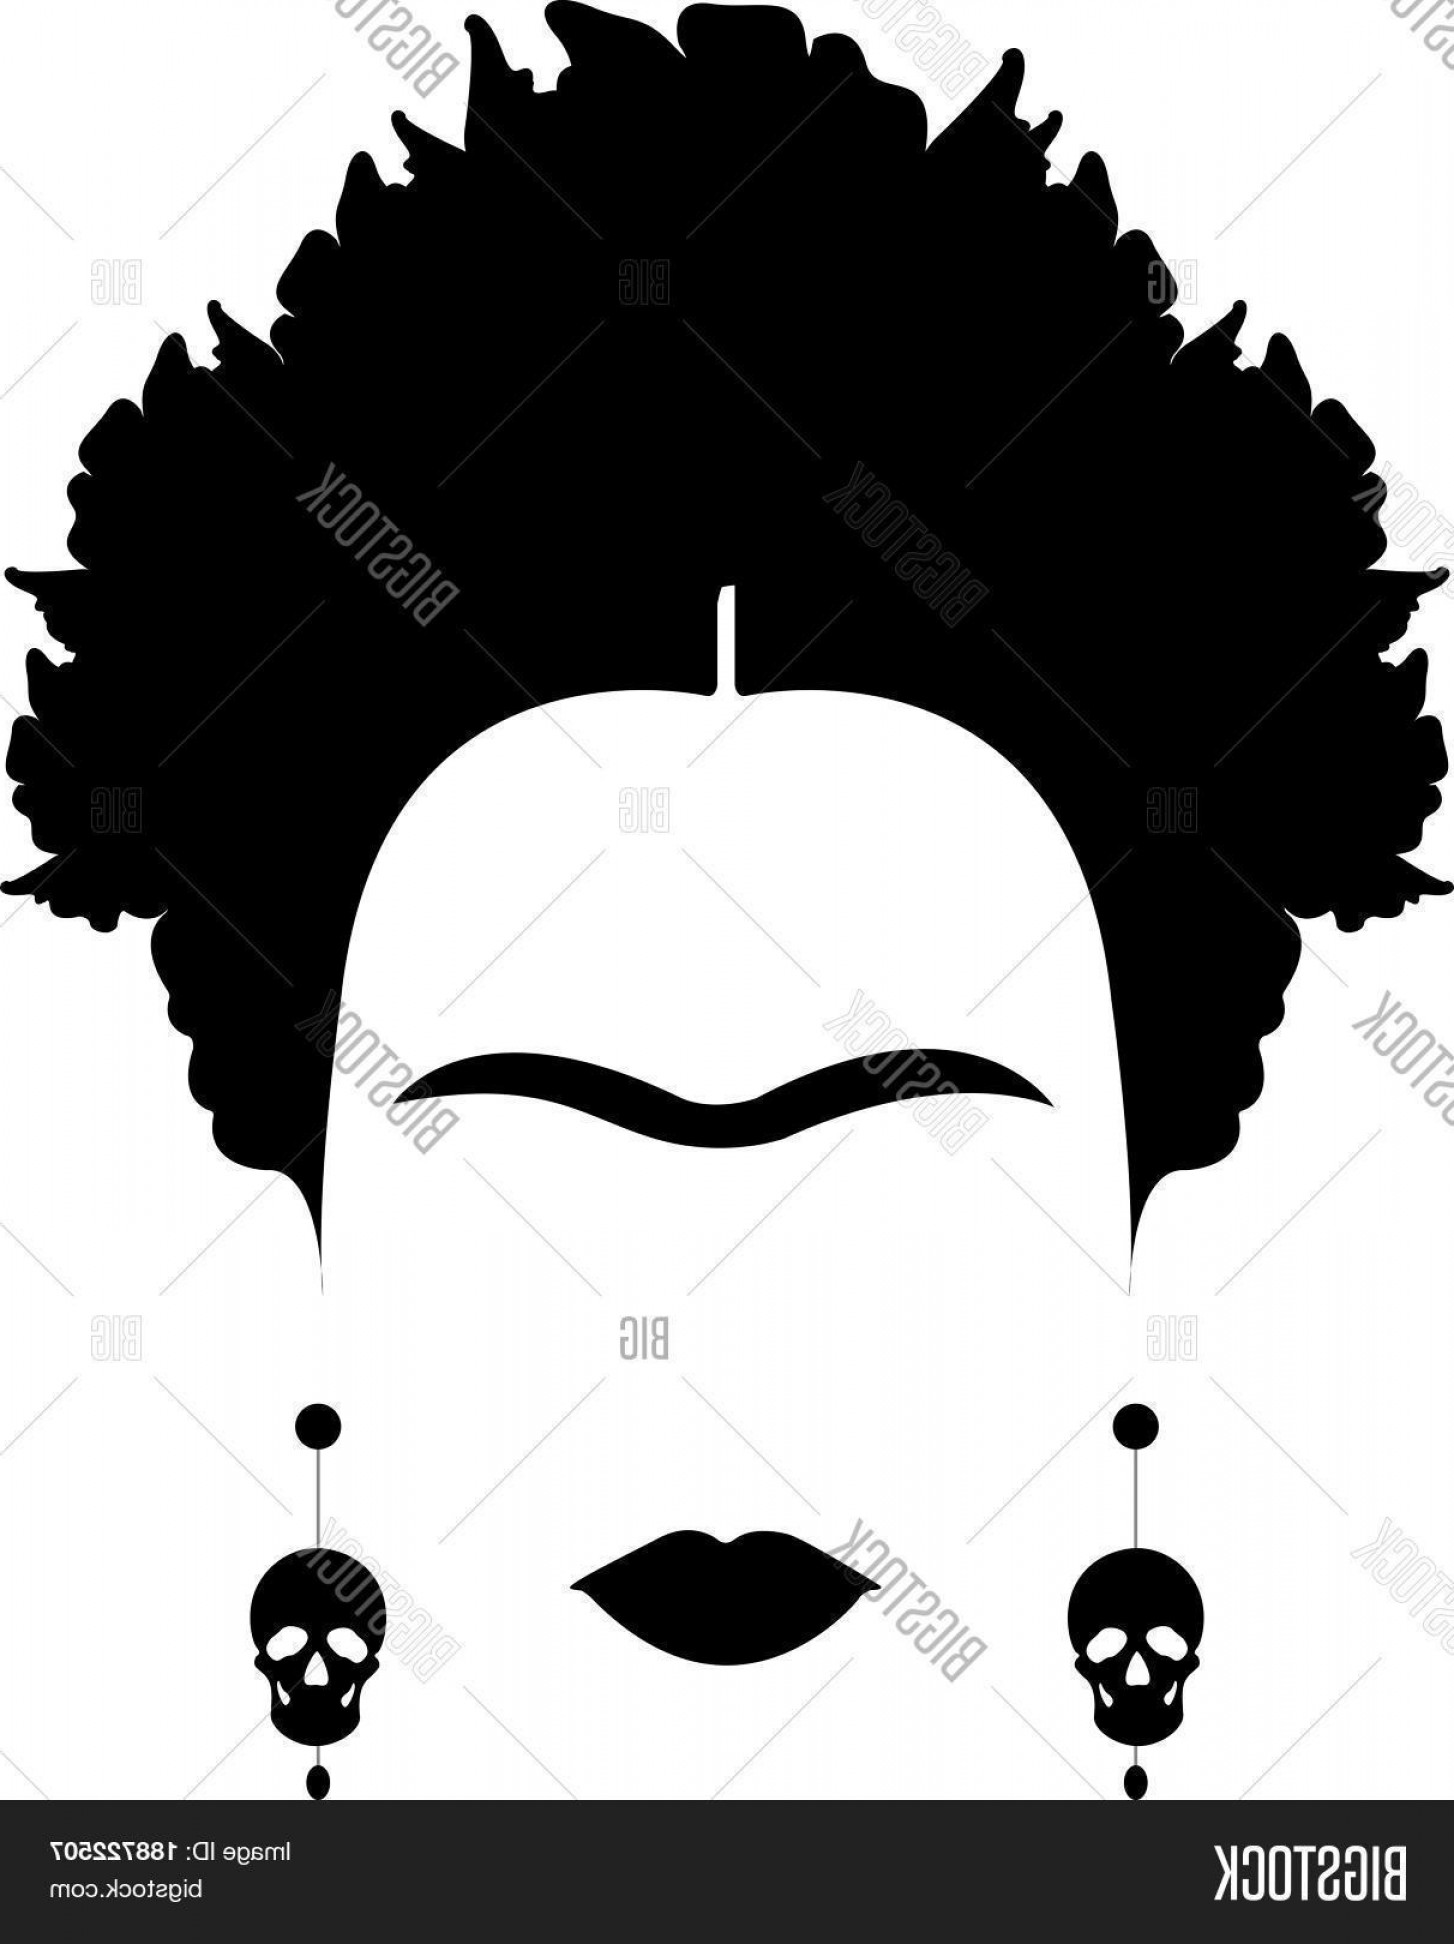 Frida Black And White Vector: Stock Vector Portrait Of Mexican Or Spanish Woman Minimalist Frida Kahlo With Earrings Skullsc Vector Isolated